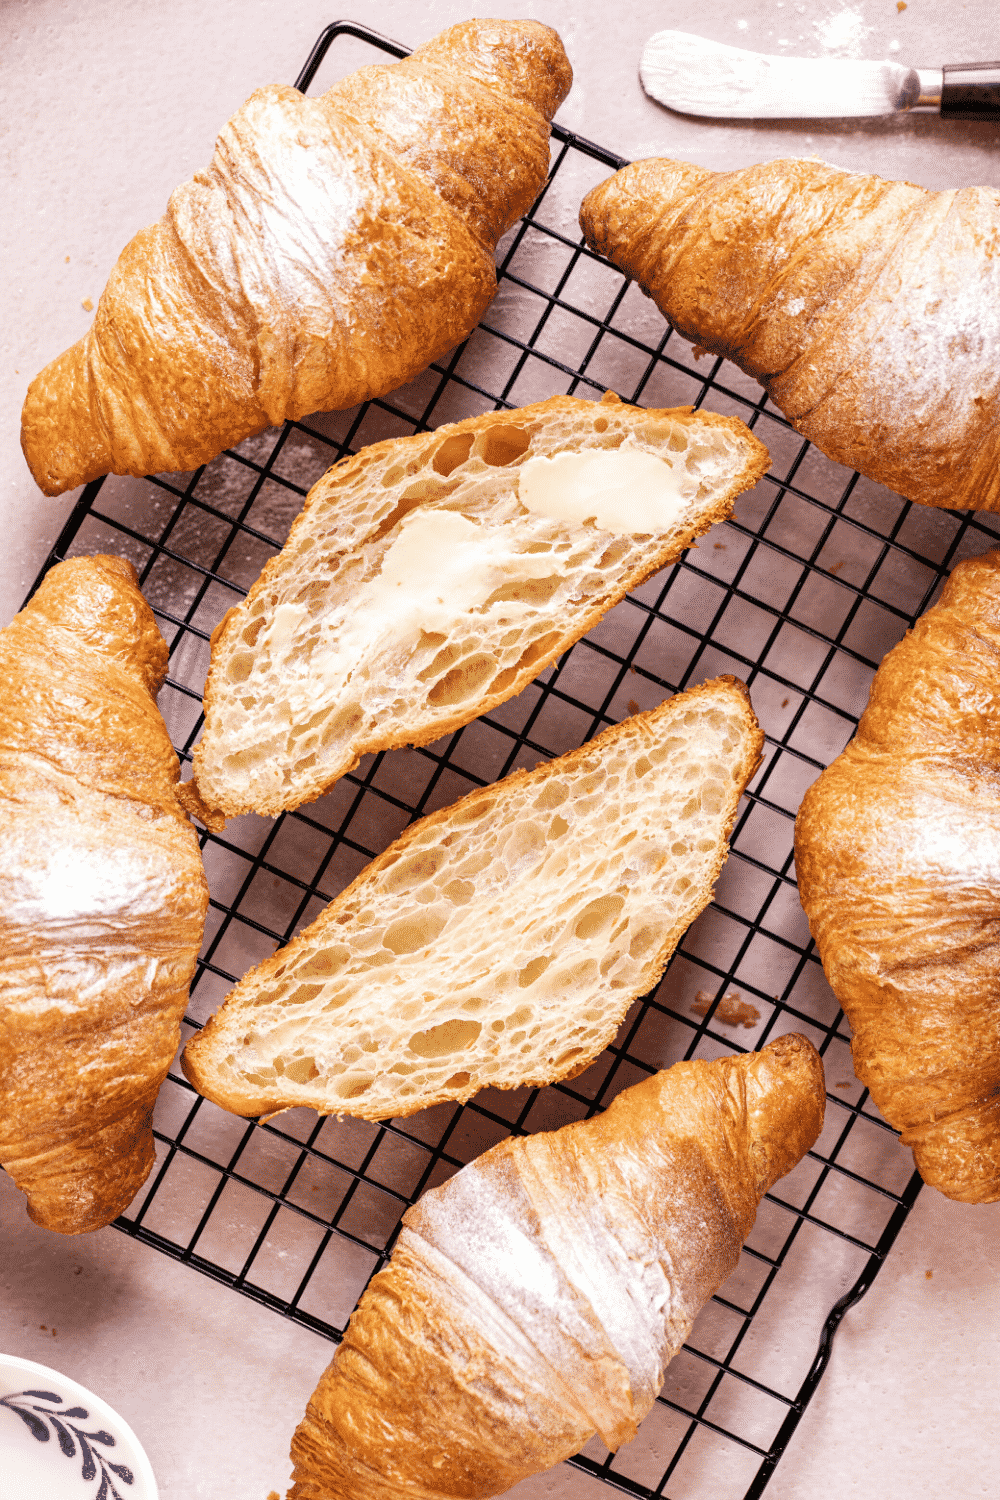 A black wire rack with six croissants on it. One croissant is broken in half with the inside facing up.